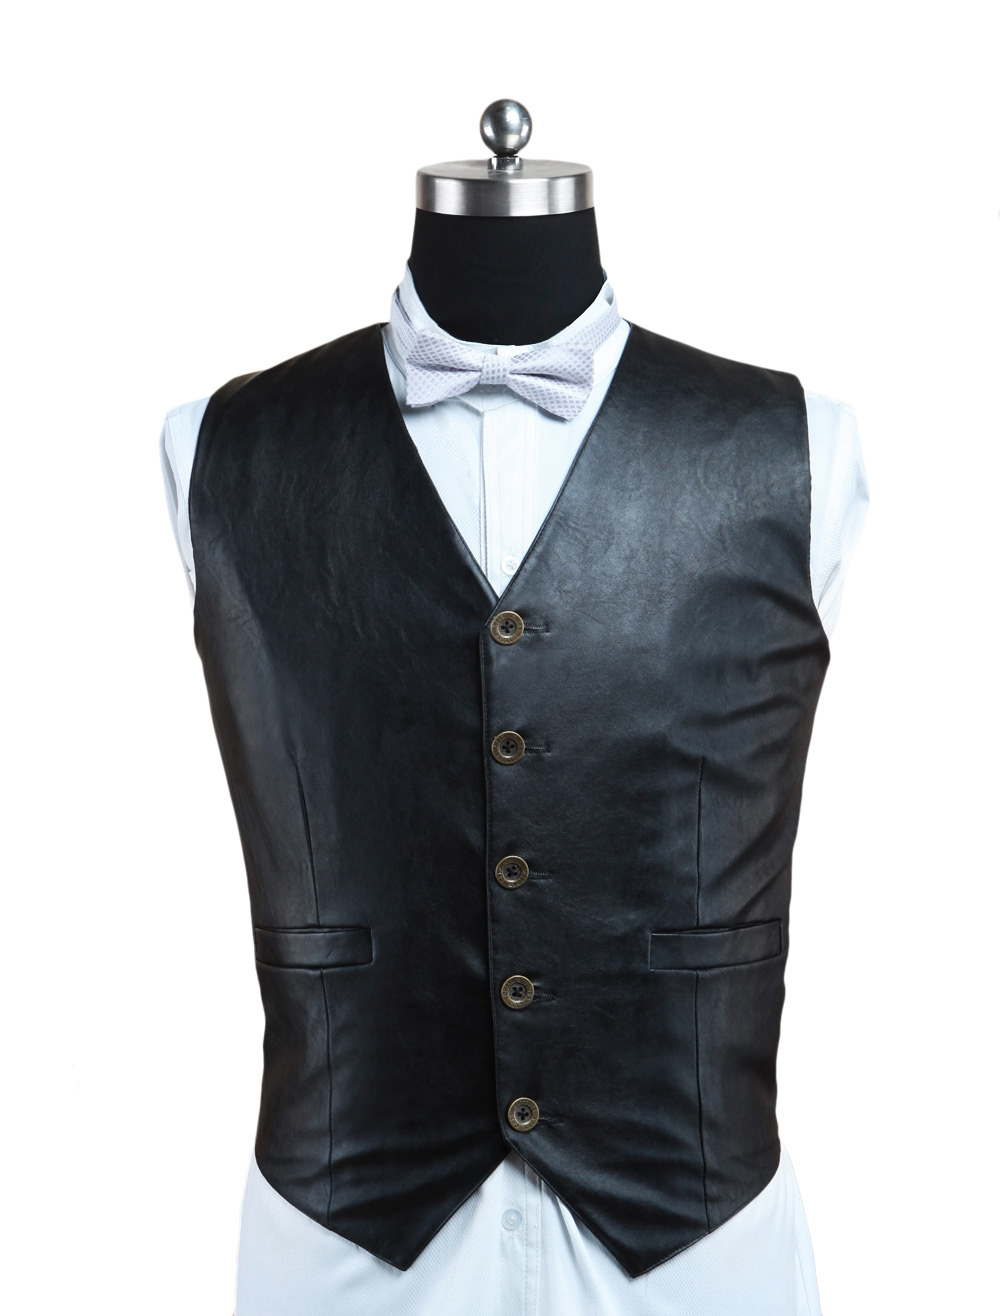 Buy Men's Steampunk Waistcoat Black Retro Costume Leather Suit Vest Halloween for $57.99 in Milanoo store